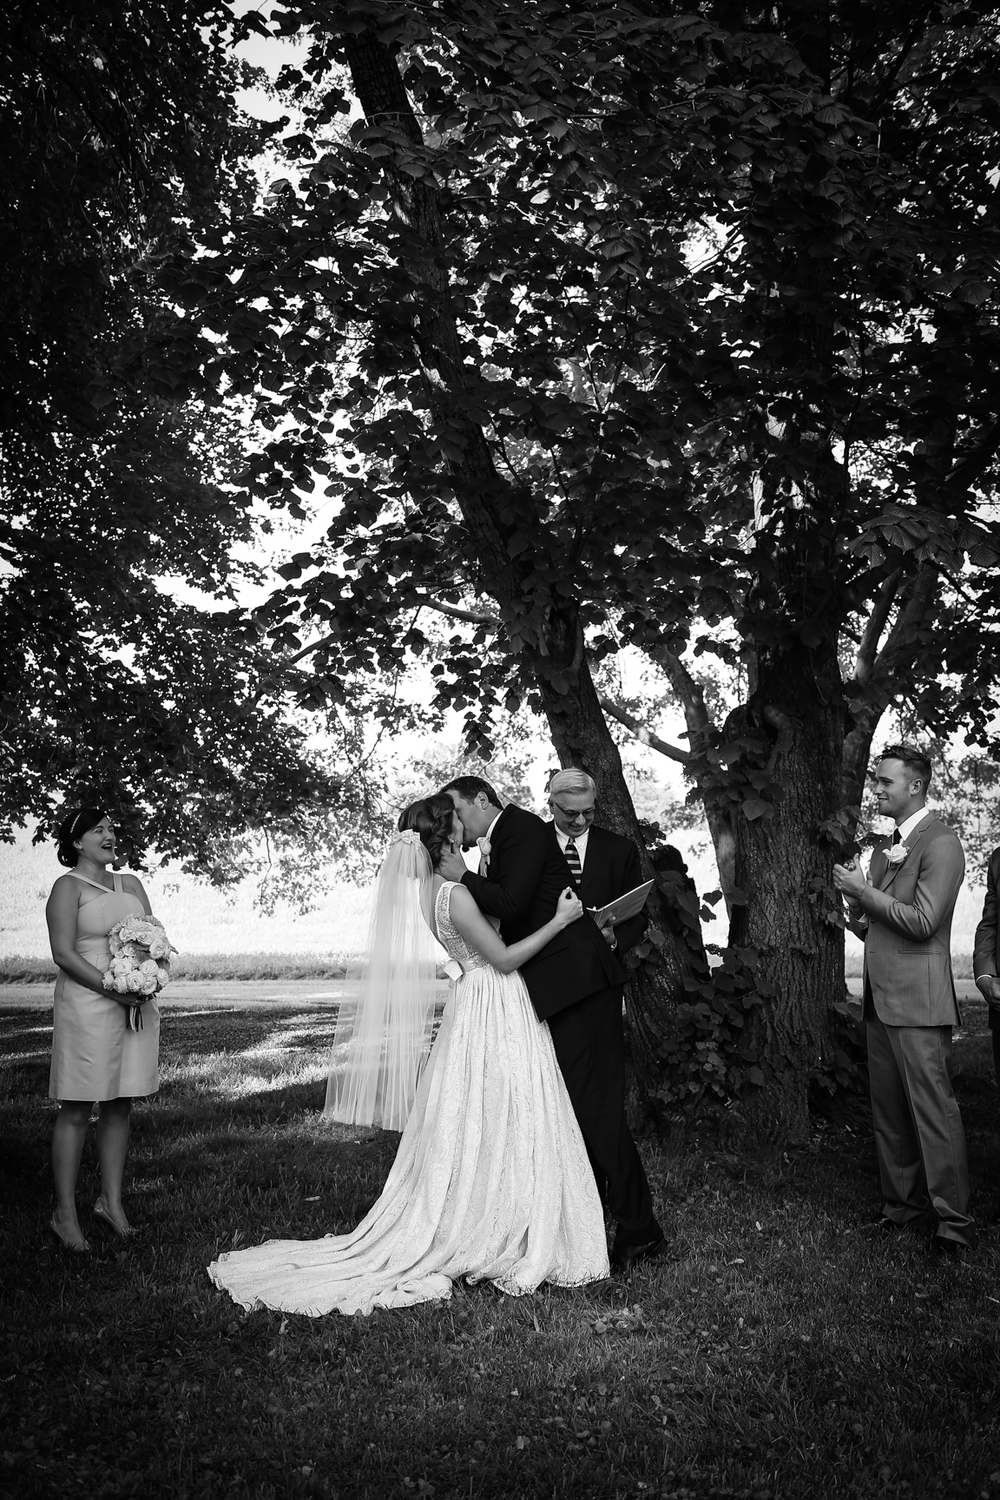 Whitehall Estates Wedding Ceremony Photo Kissing Black and White Photo